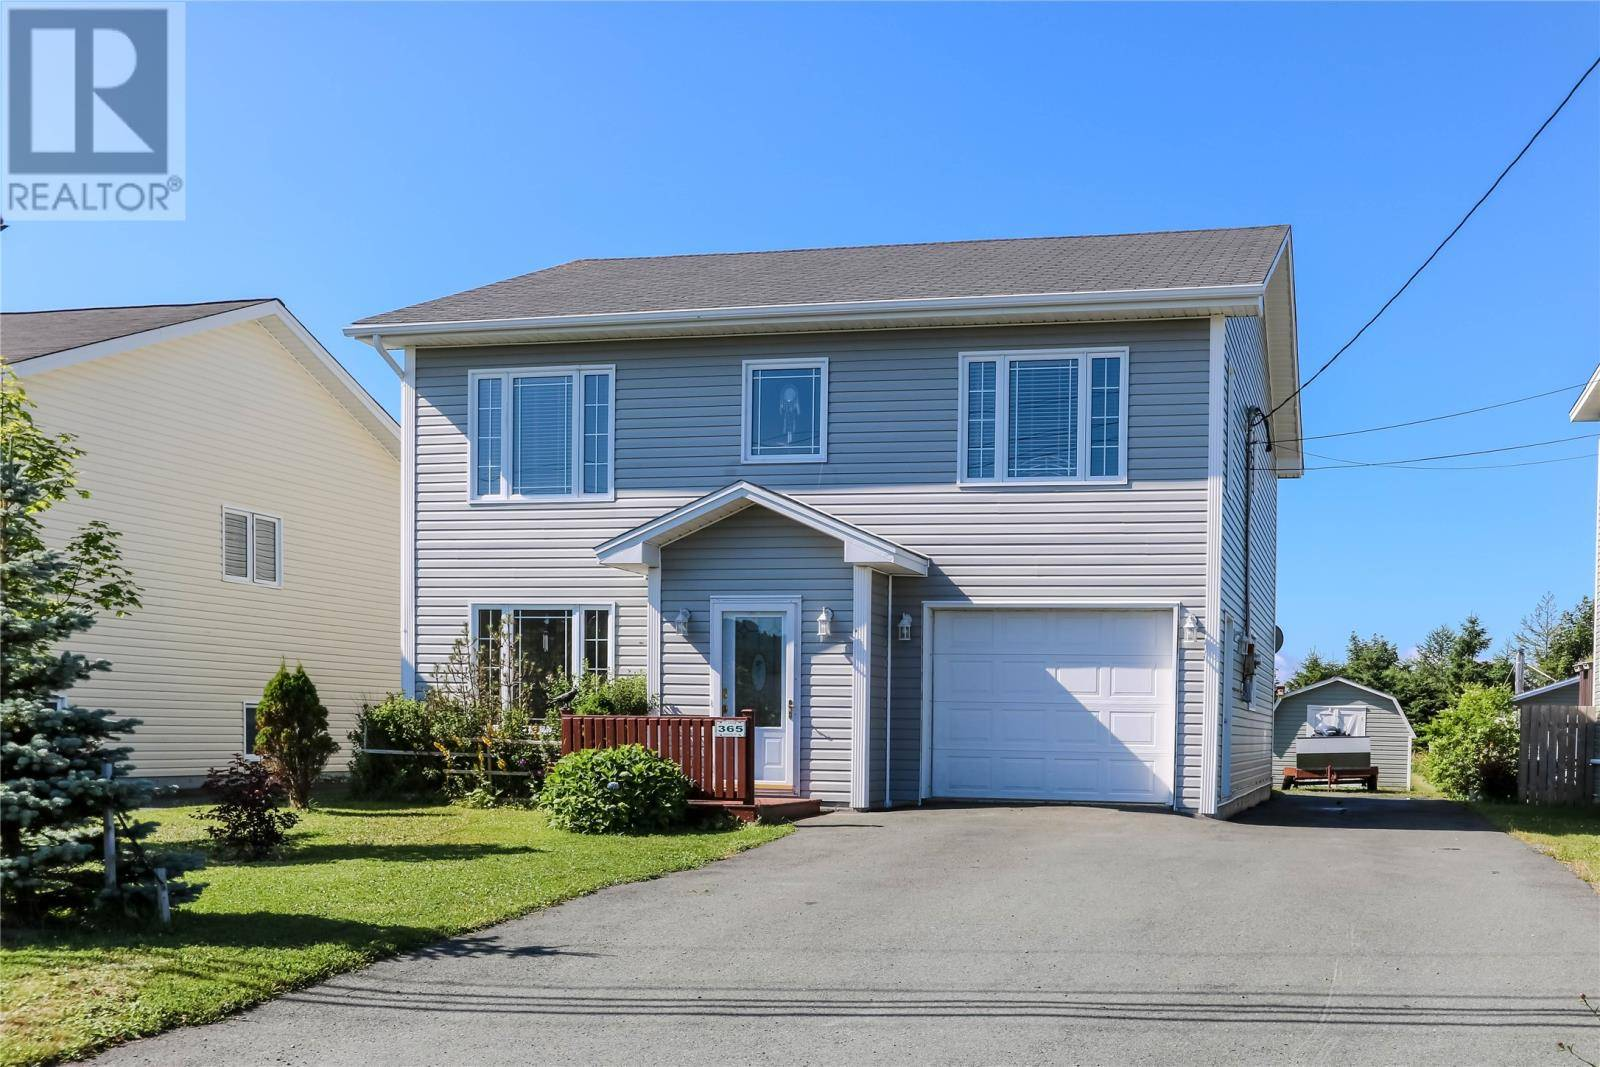 House for sale at 365 Paradise Rd Paradise Newfoundland - MLS: 1207712